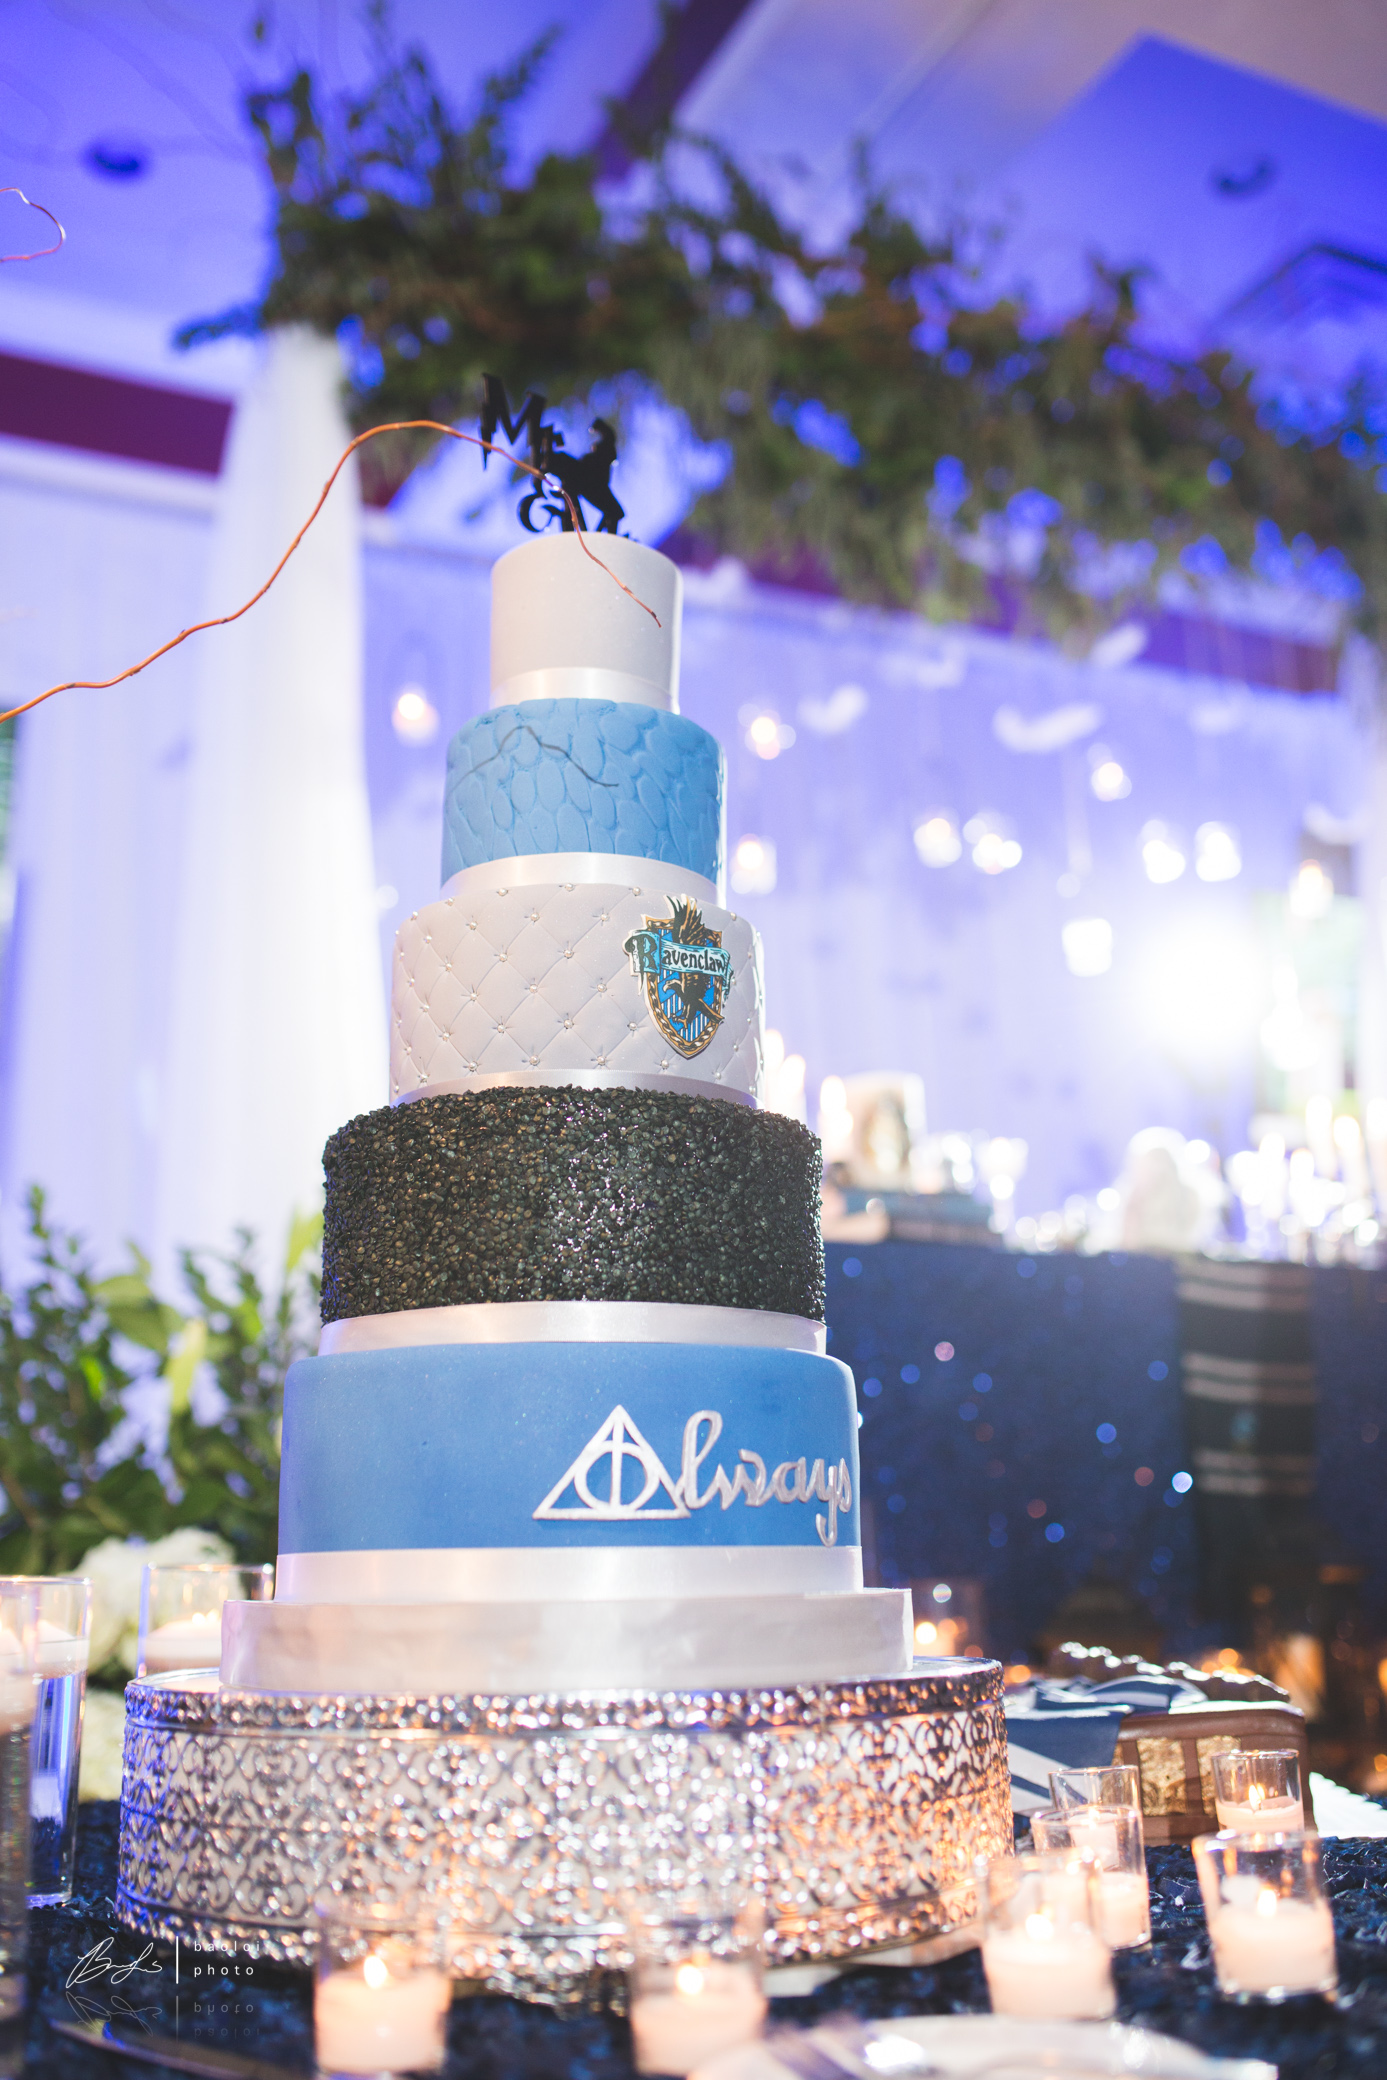 Harry Potter Wedding Cake Design